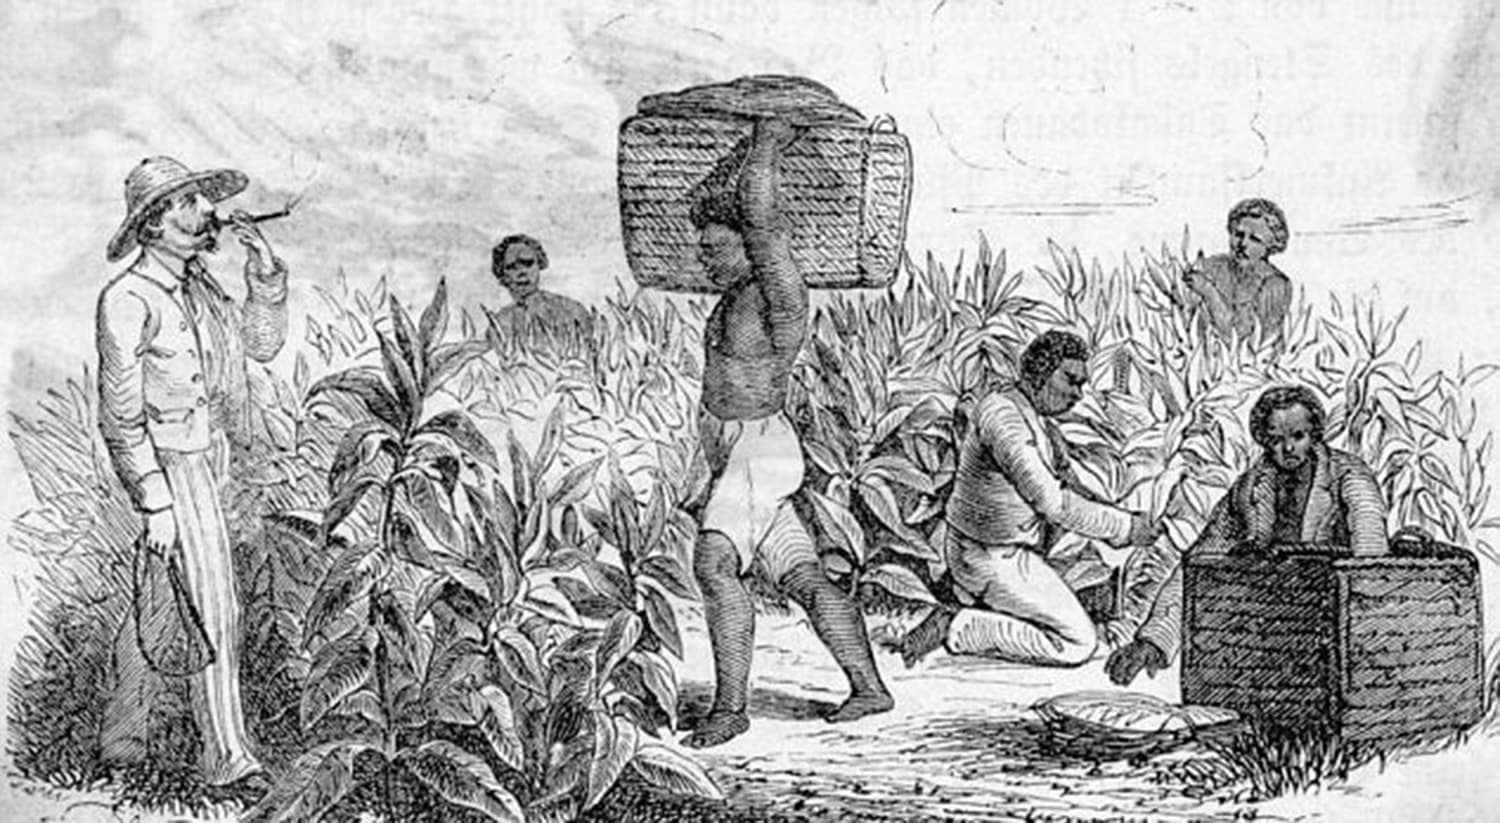 a history of slavery from the ancient times to the united states Trace the history of slavery and abolition through the ages, from the days of ancient egypt and rome to the birth of the anti-slavery movement and the latest united nations treaties many historical timeline entries are adapted from new slavery: a reference handbook by kevin bales, second edition.